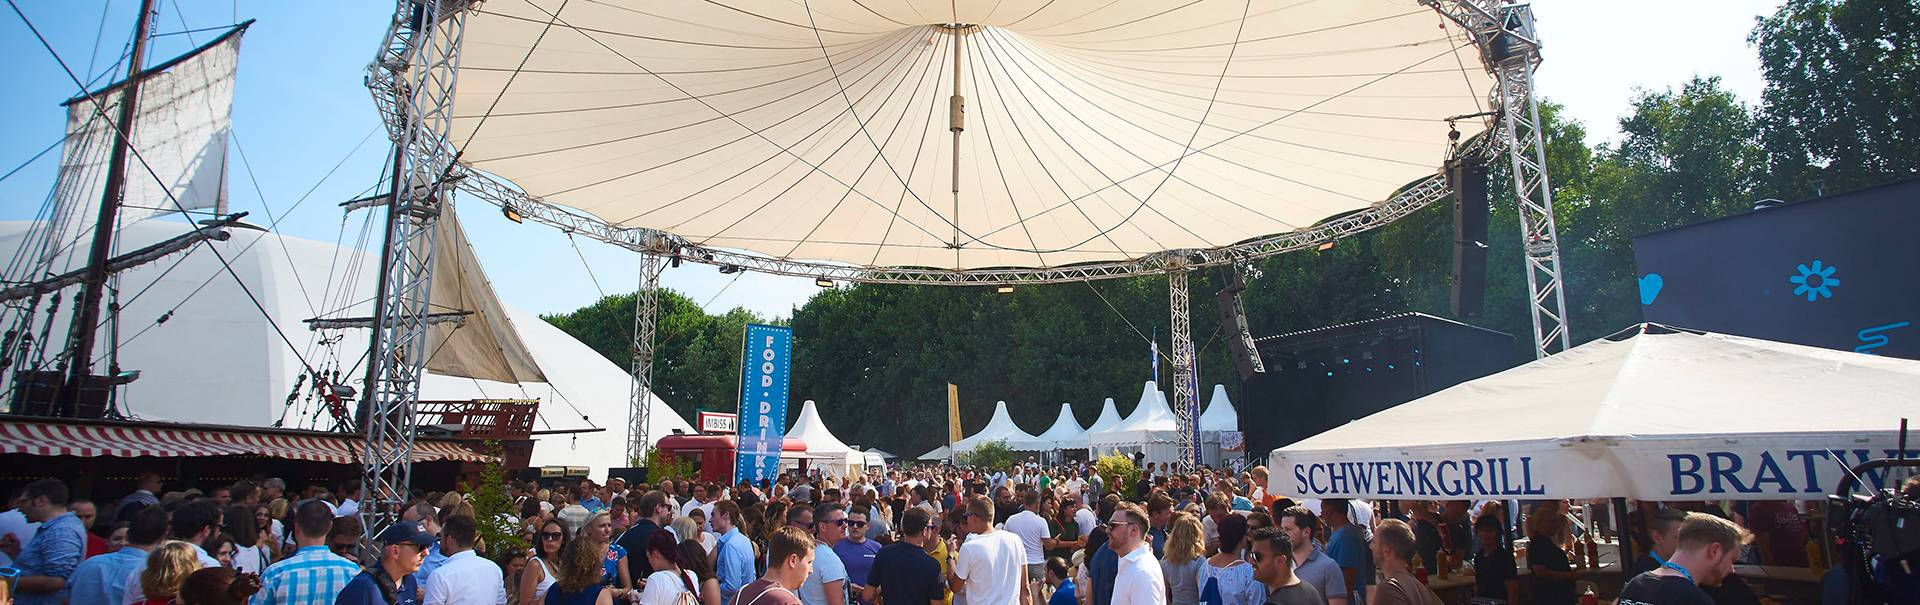 Mignon Sommerfest 2019 Magic Sky Kuppel Hamburg